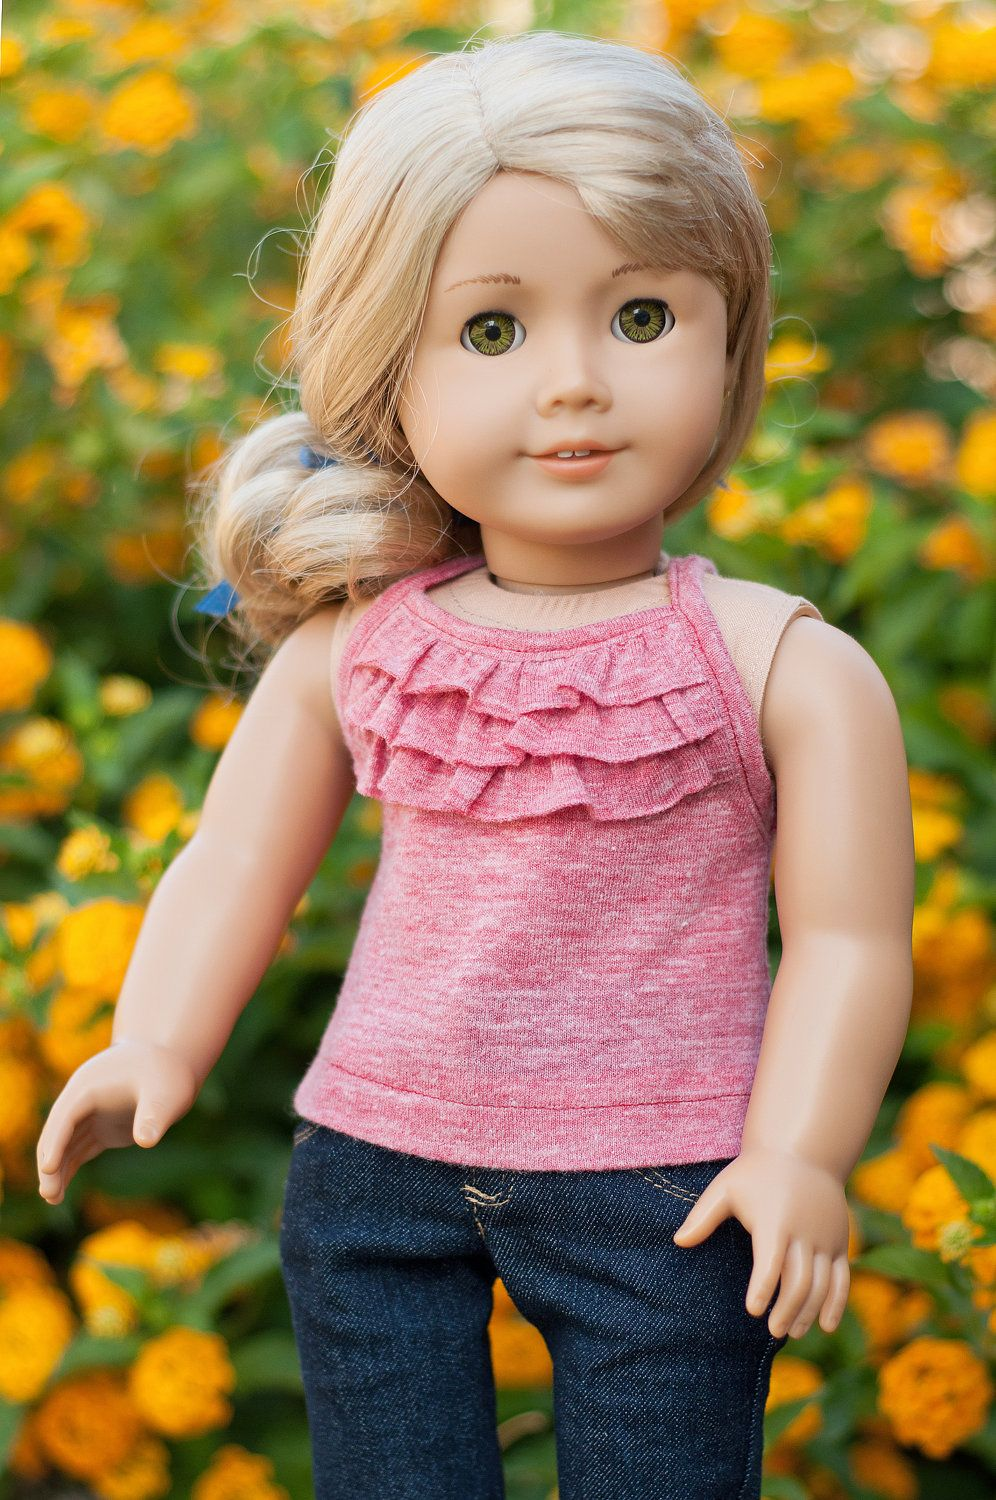 Doll Clothes: Ruffled Tank Top for an American Girl Doll or Other 18 ...